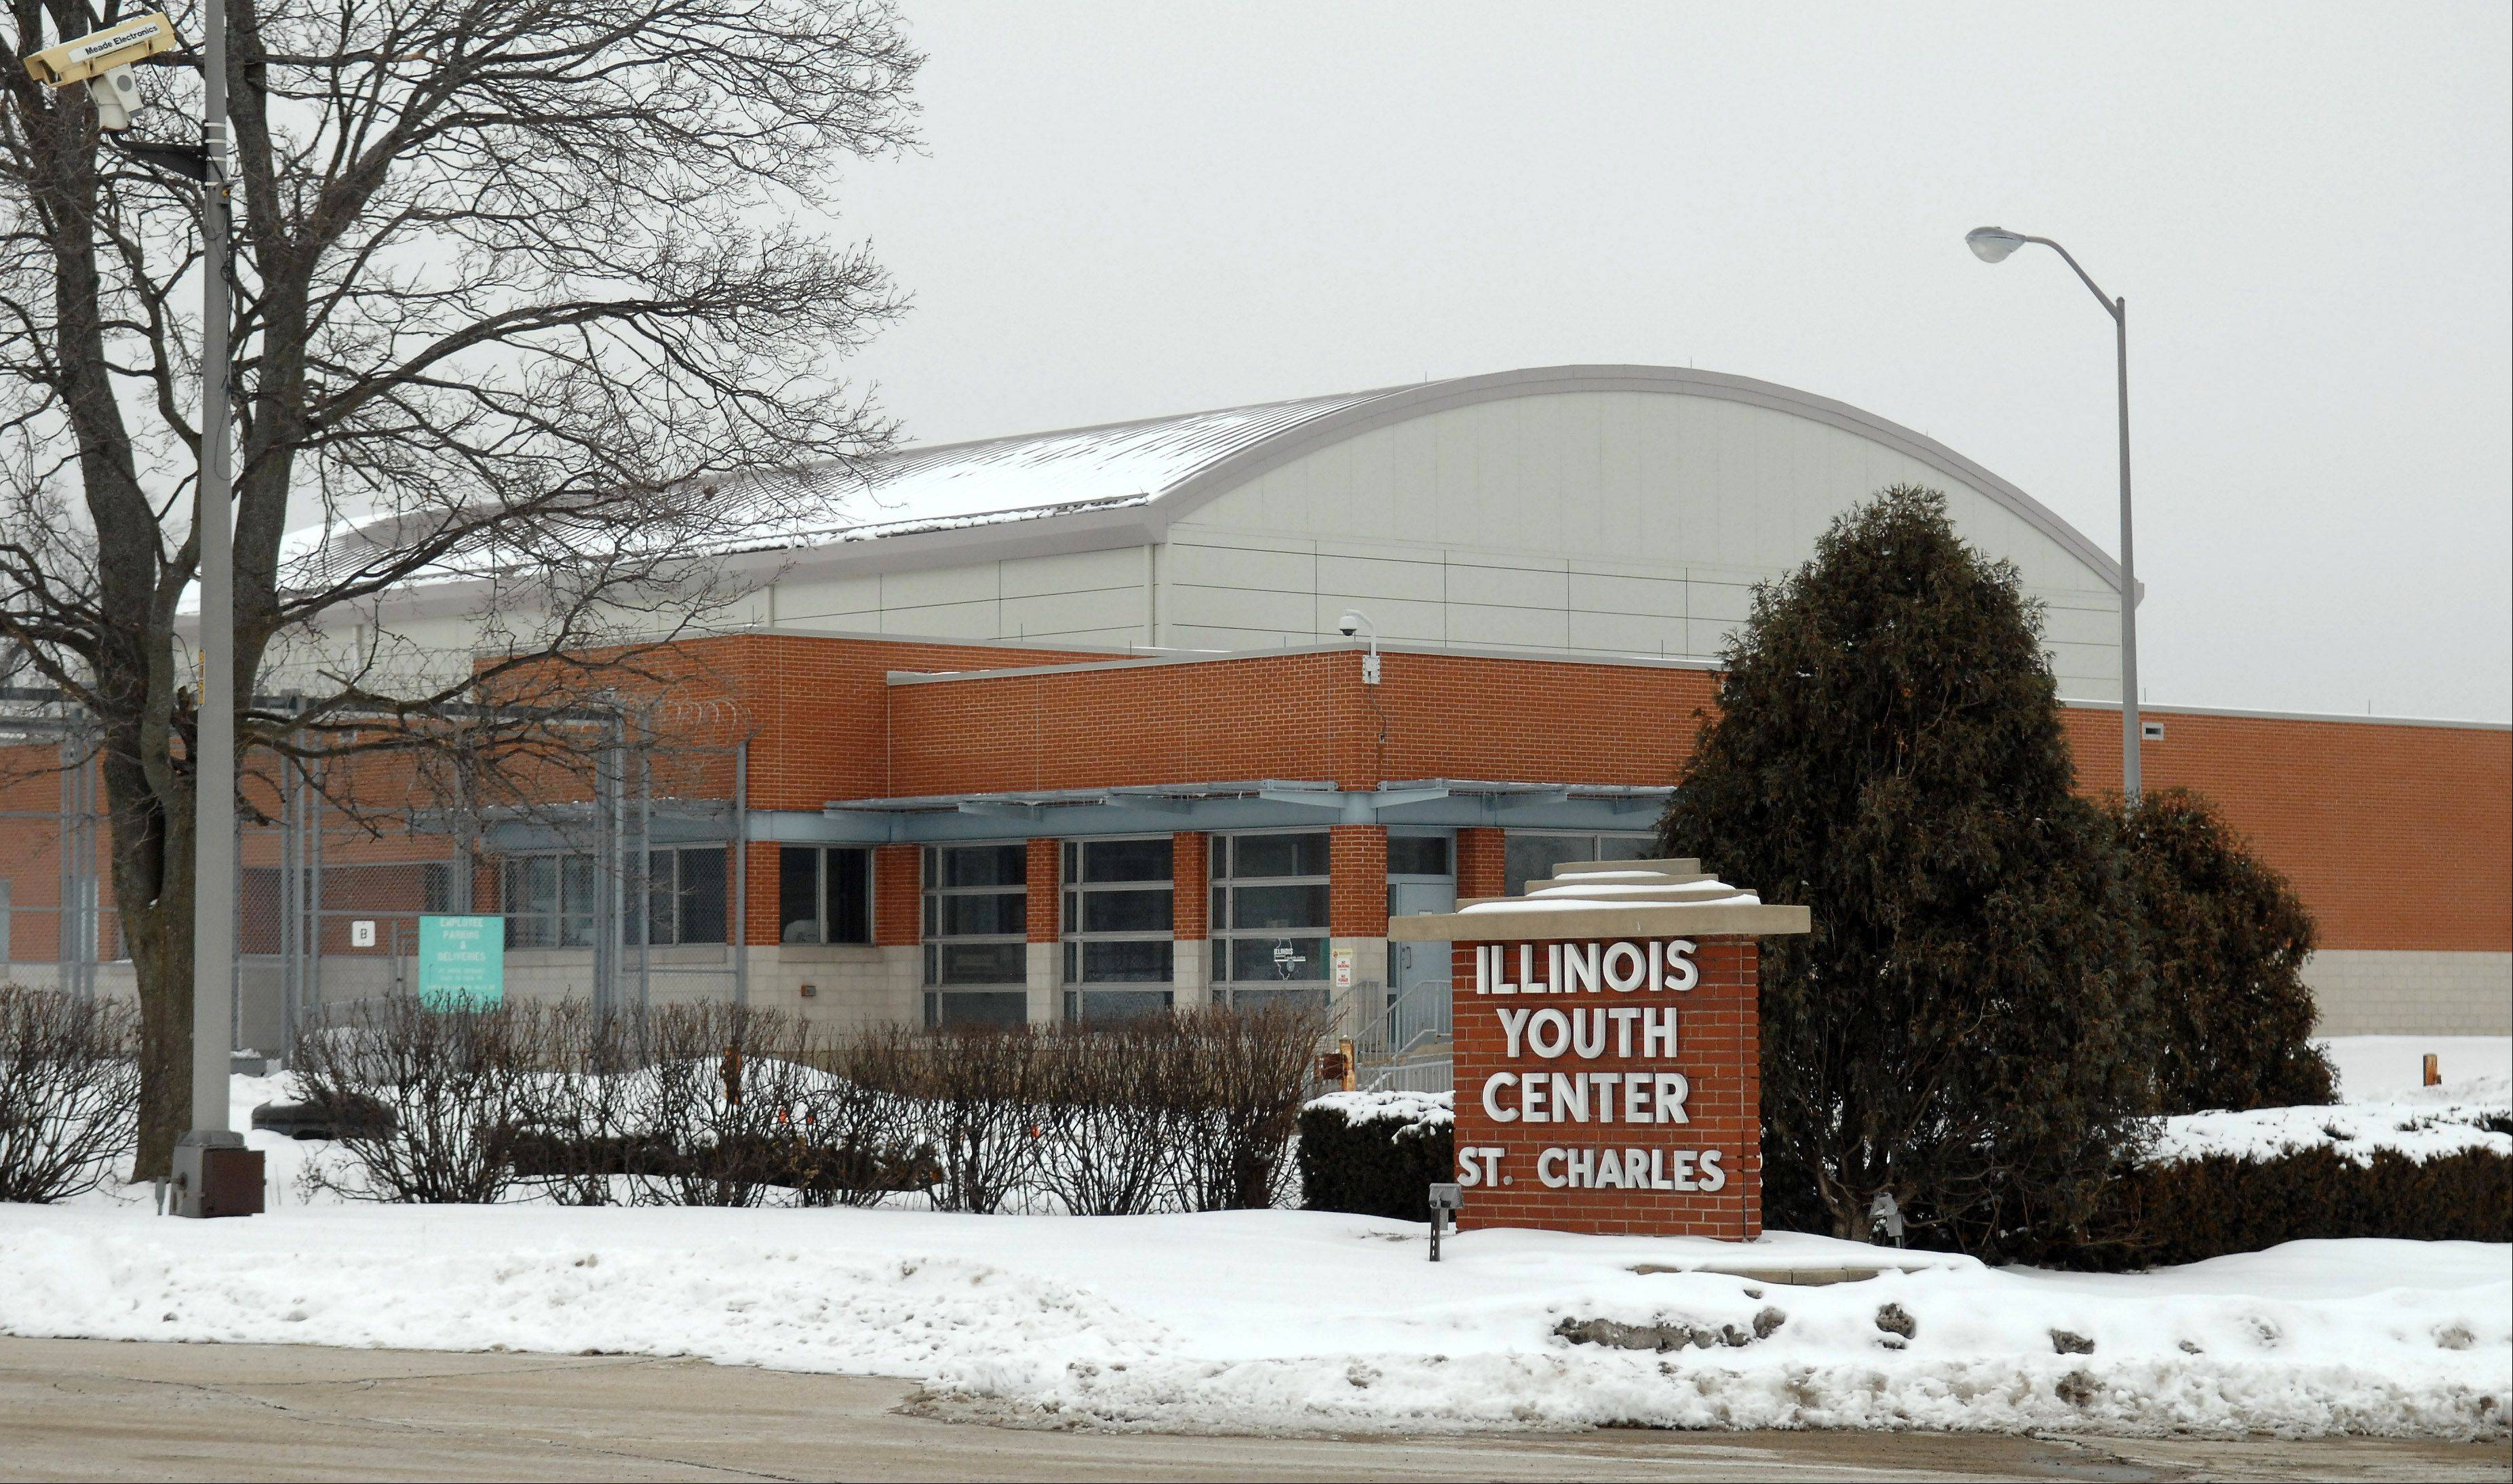 Report: More inmates, more problems at IYC in St. Charles